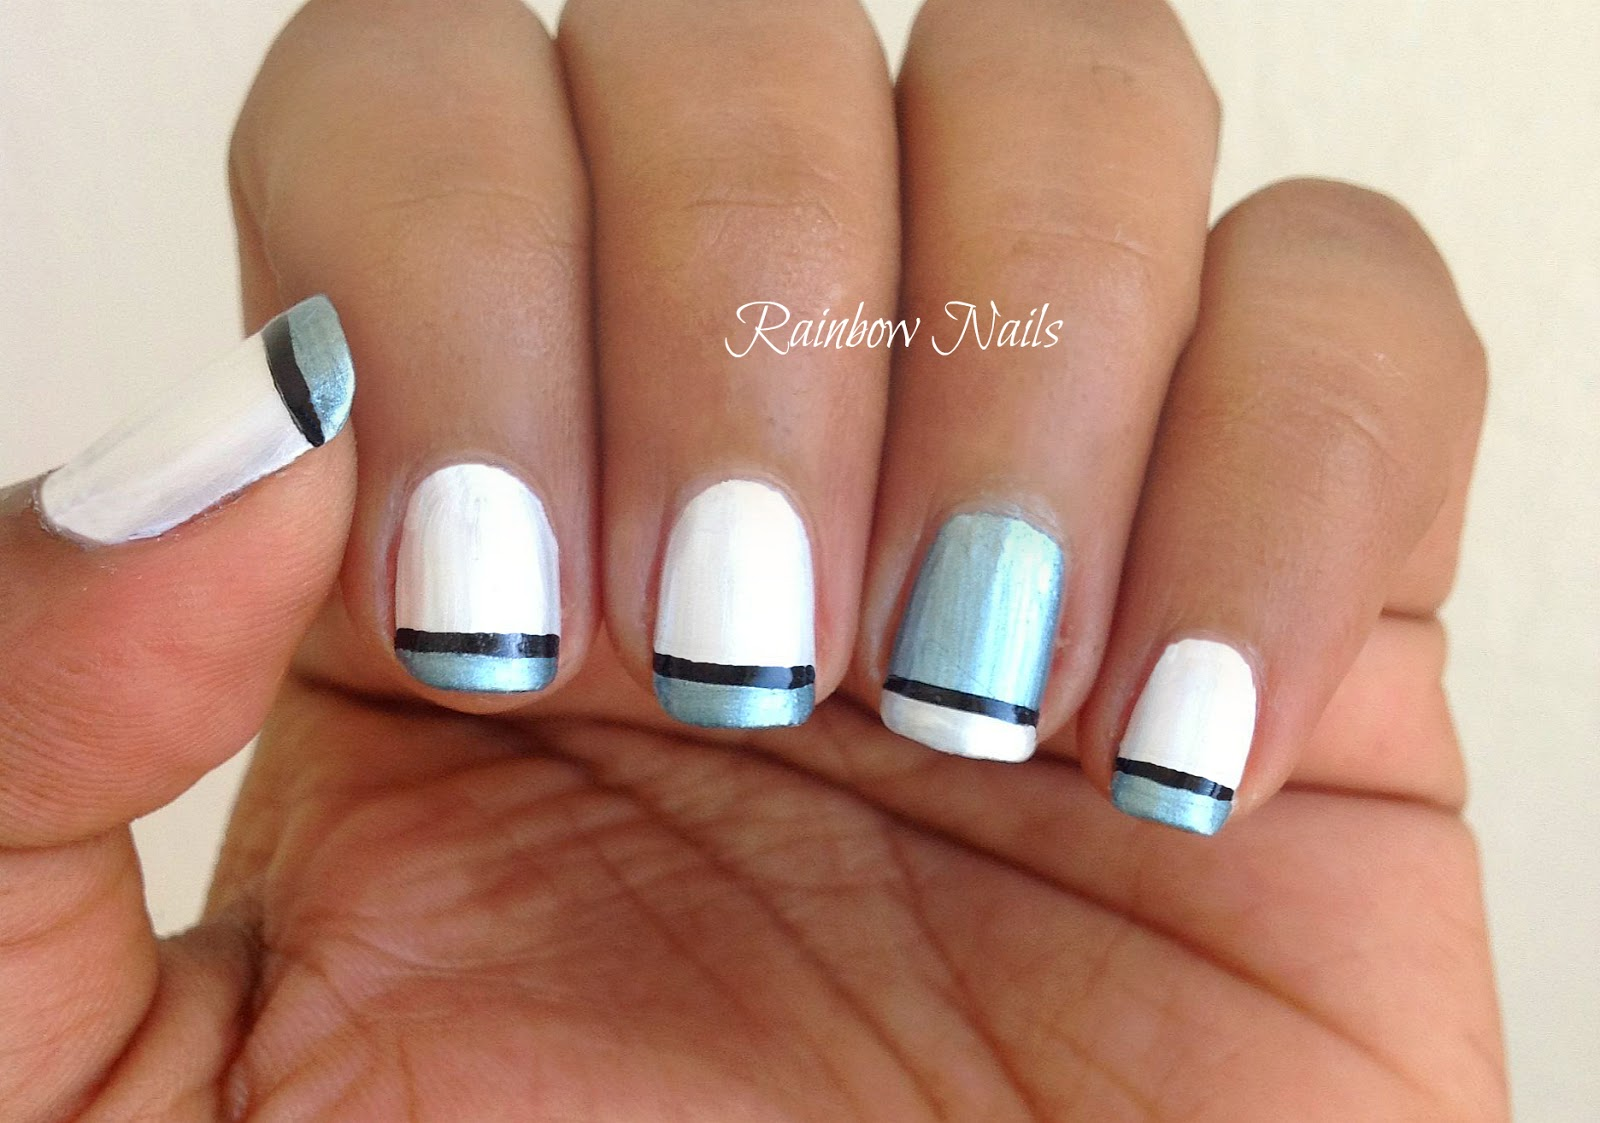 Incredible French Tip Nail Design Ideas 1600 X 1123 197 KB Jpeg